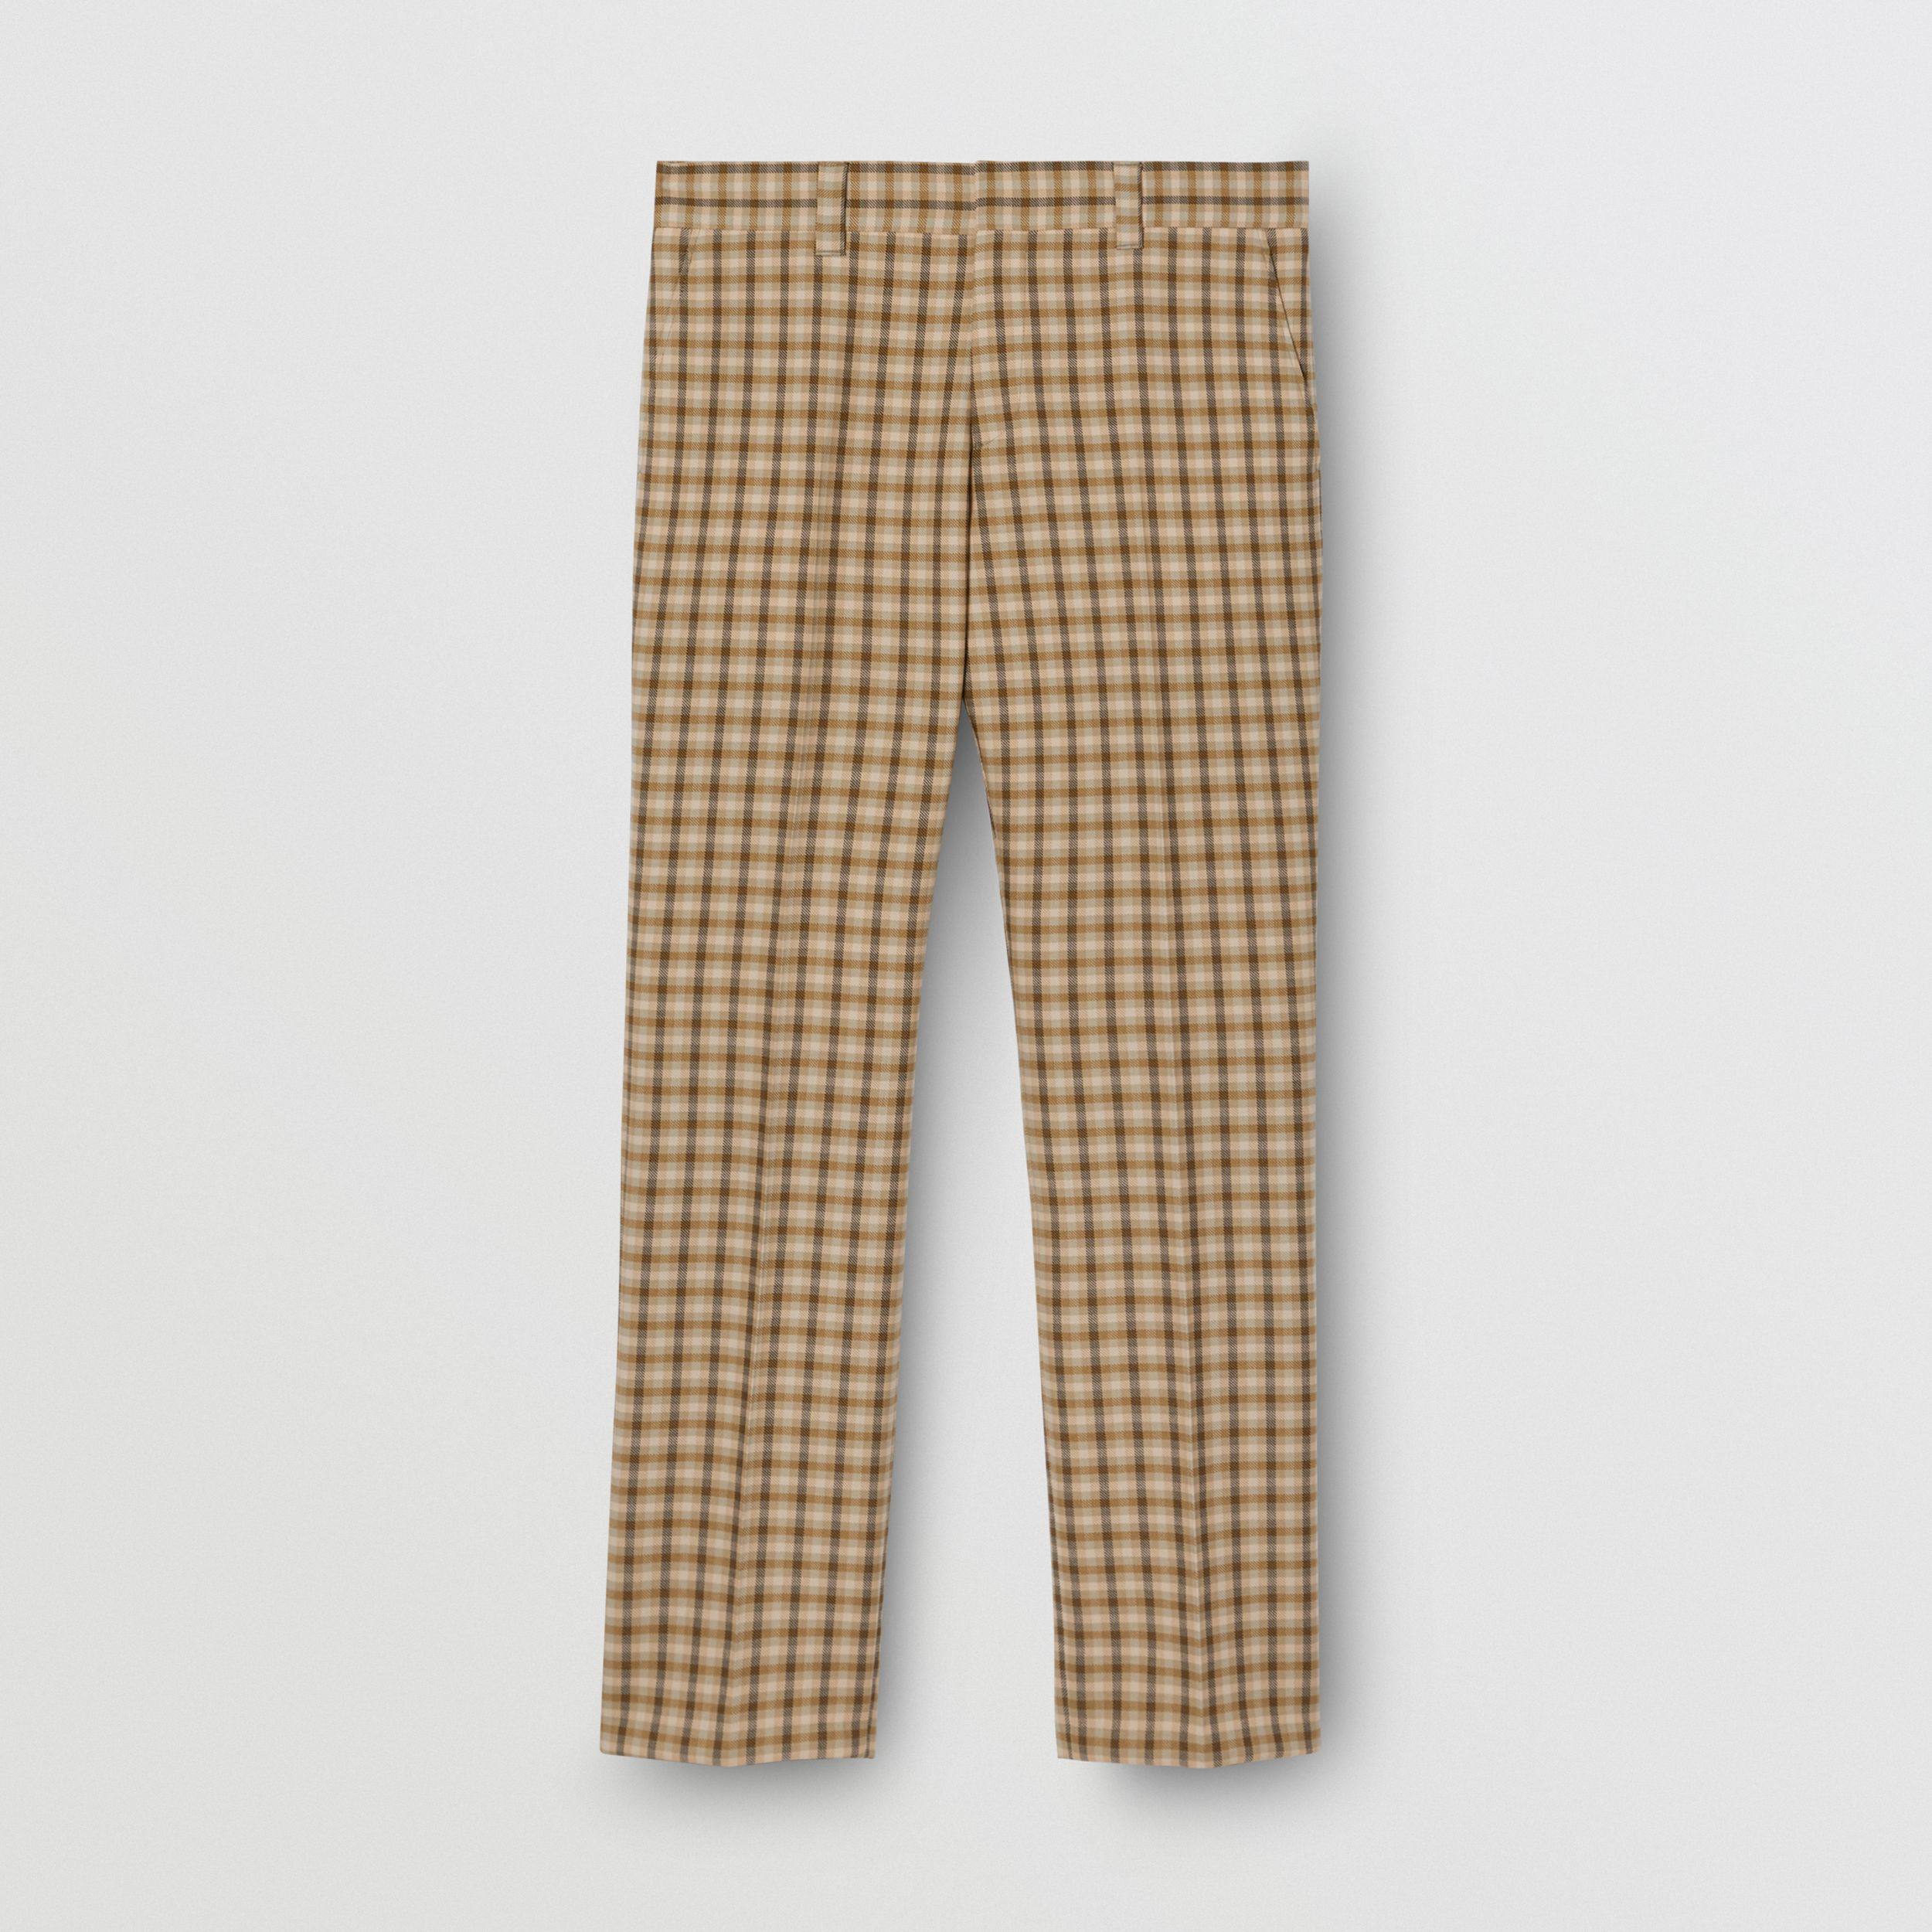 Gingham Wool Tailored Trousers in Soft Fawn - Men | Burberry - 4